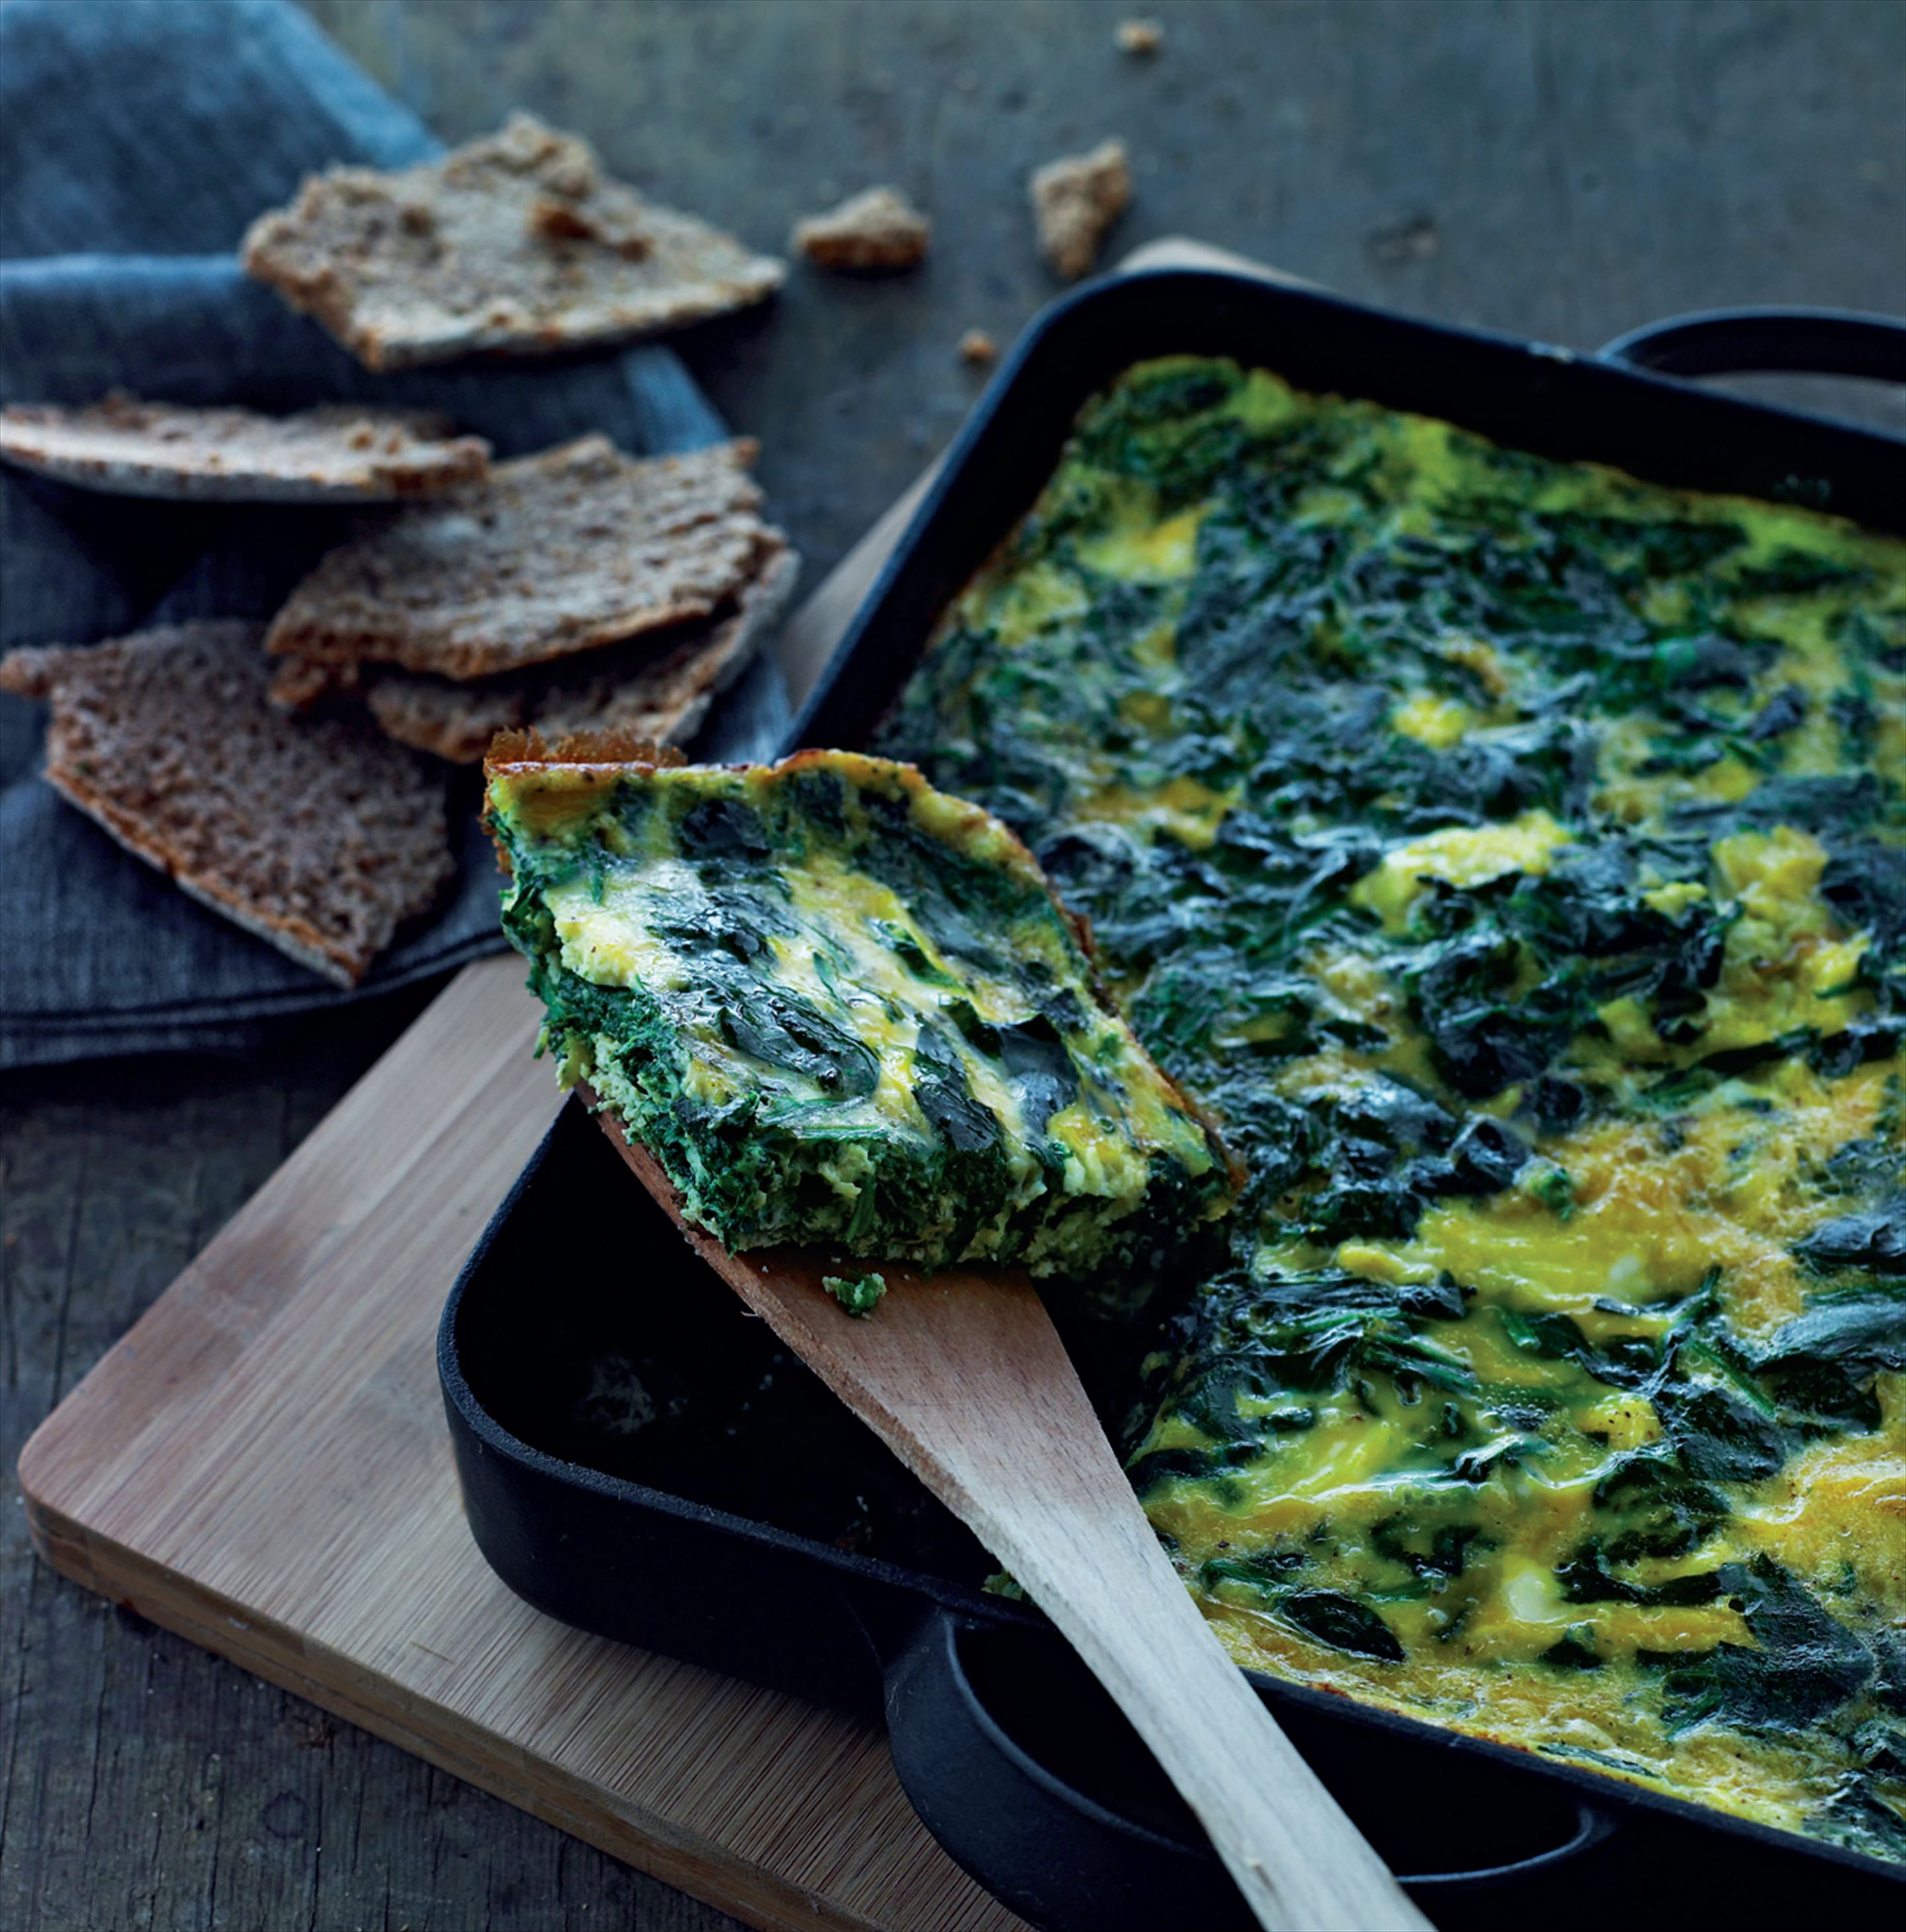 Baked omelette with spinach